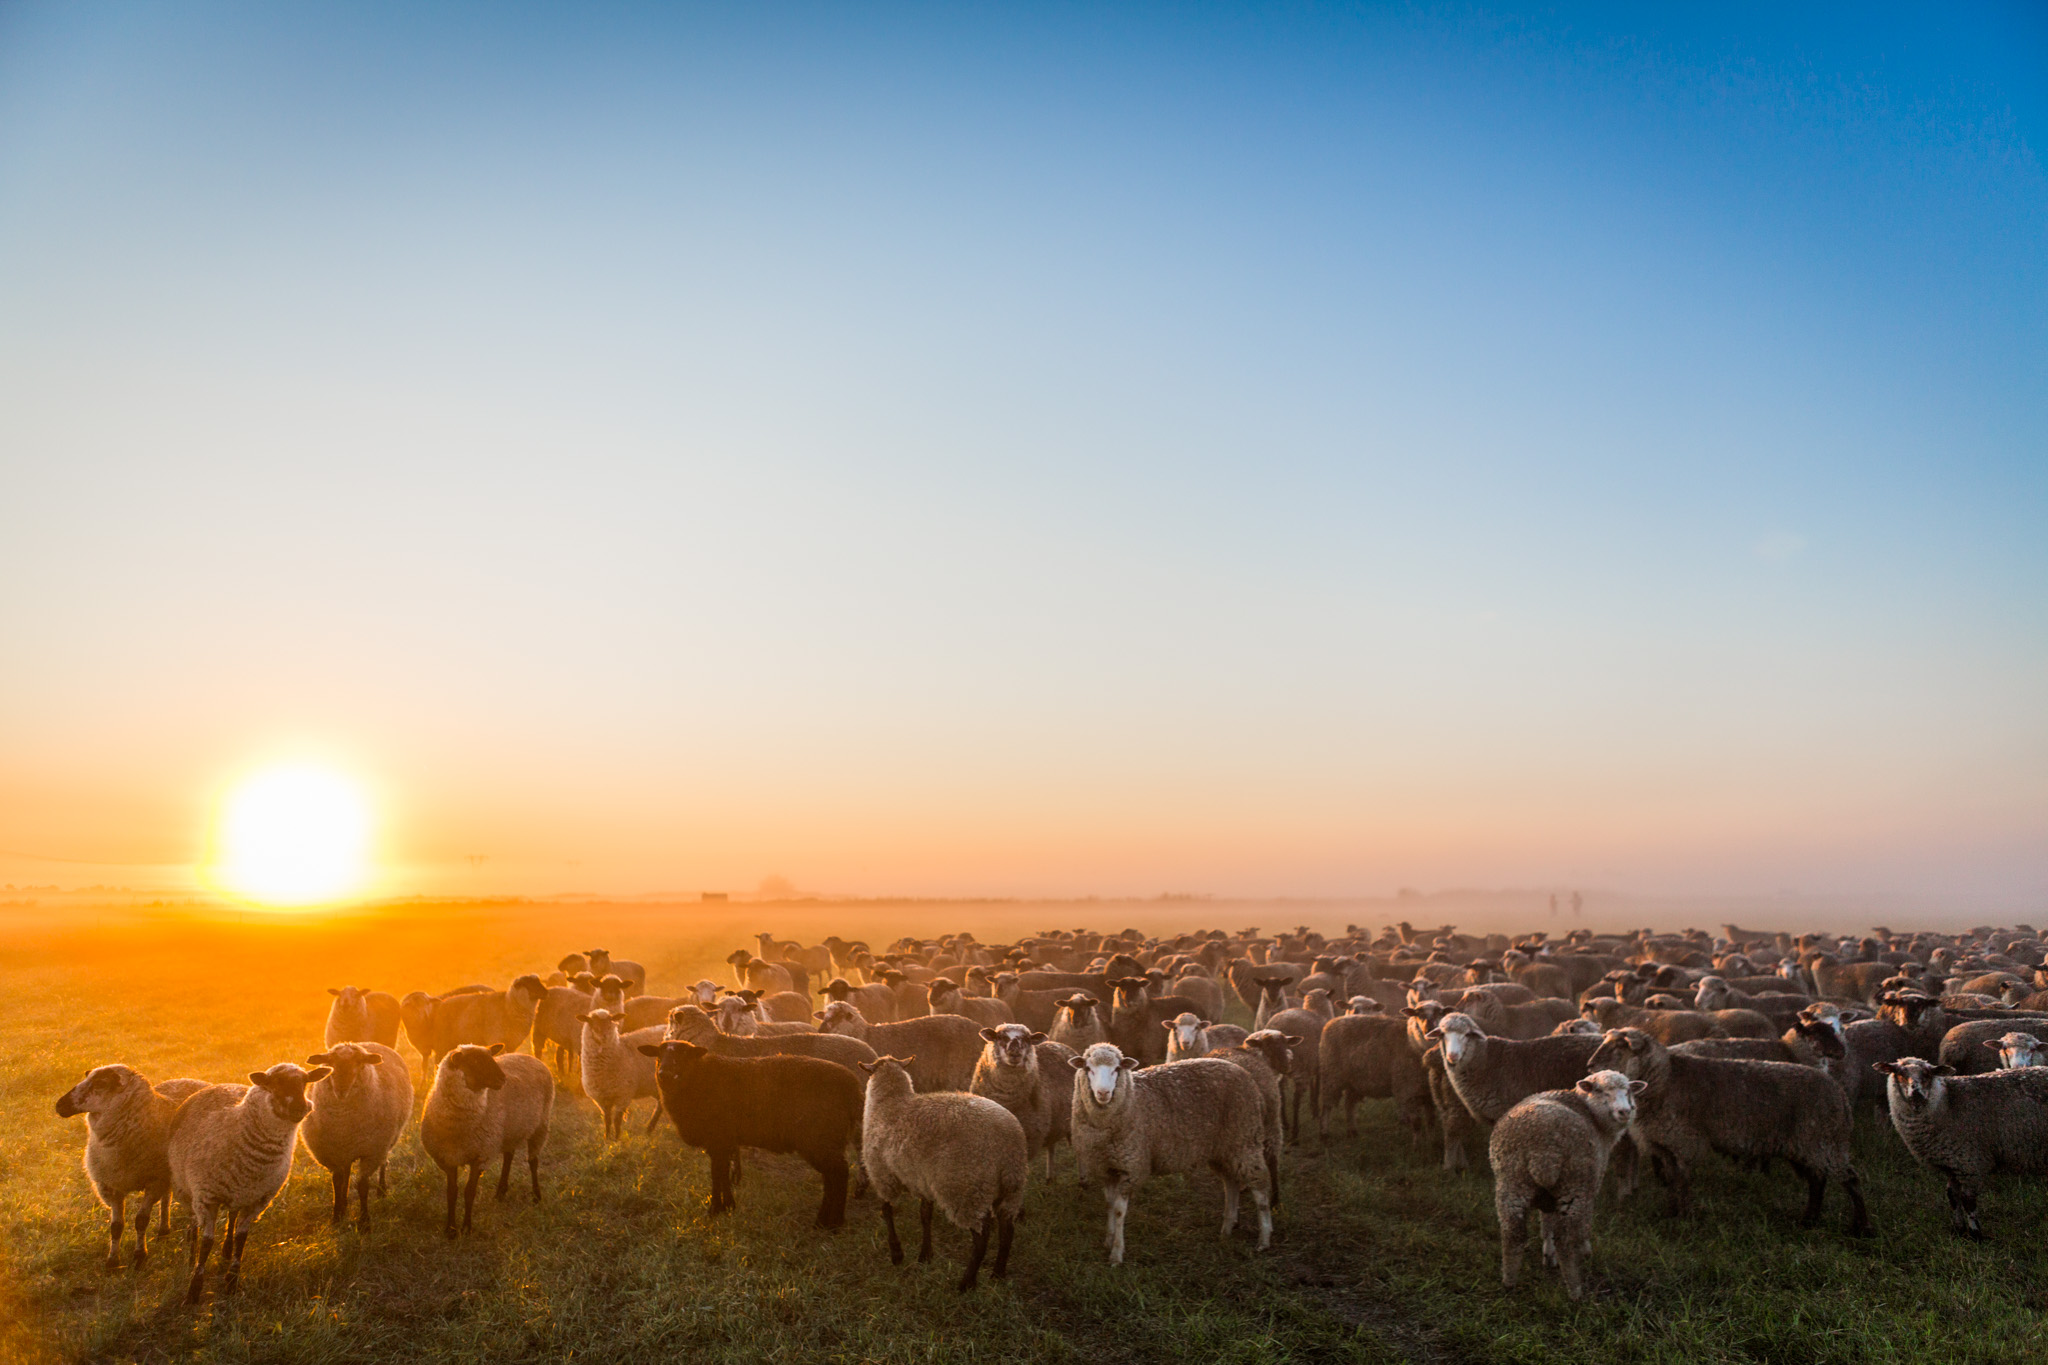 Farmland LP is converting conventional farmed land in Brentwood, California to organic pasture for raising grass-fed sheep and cattle.